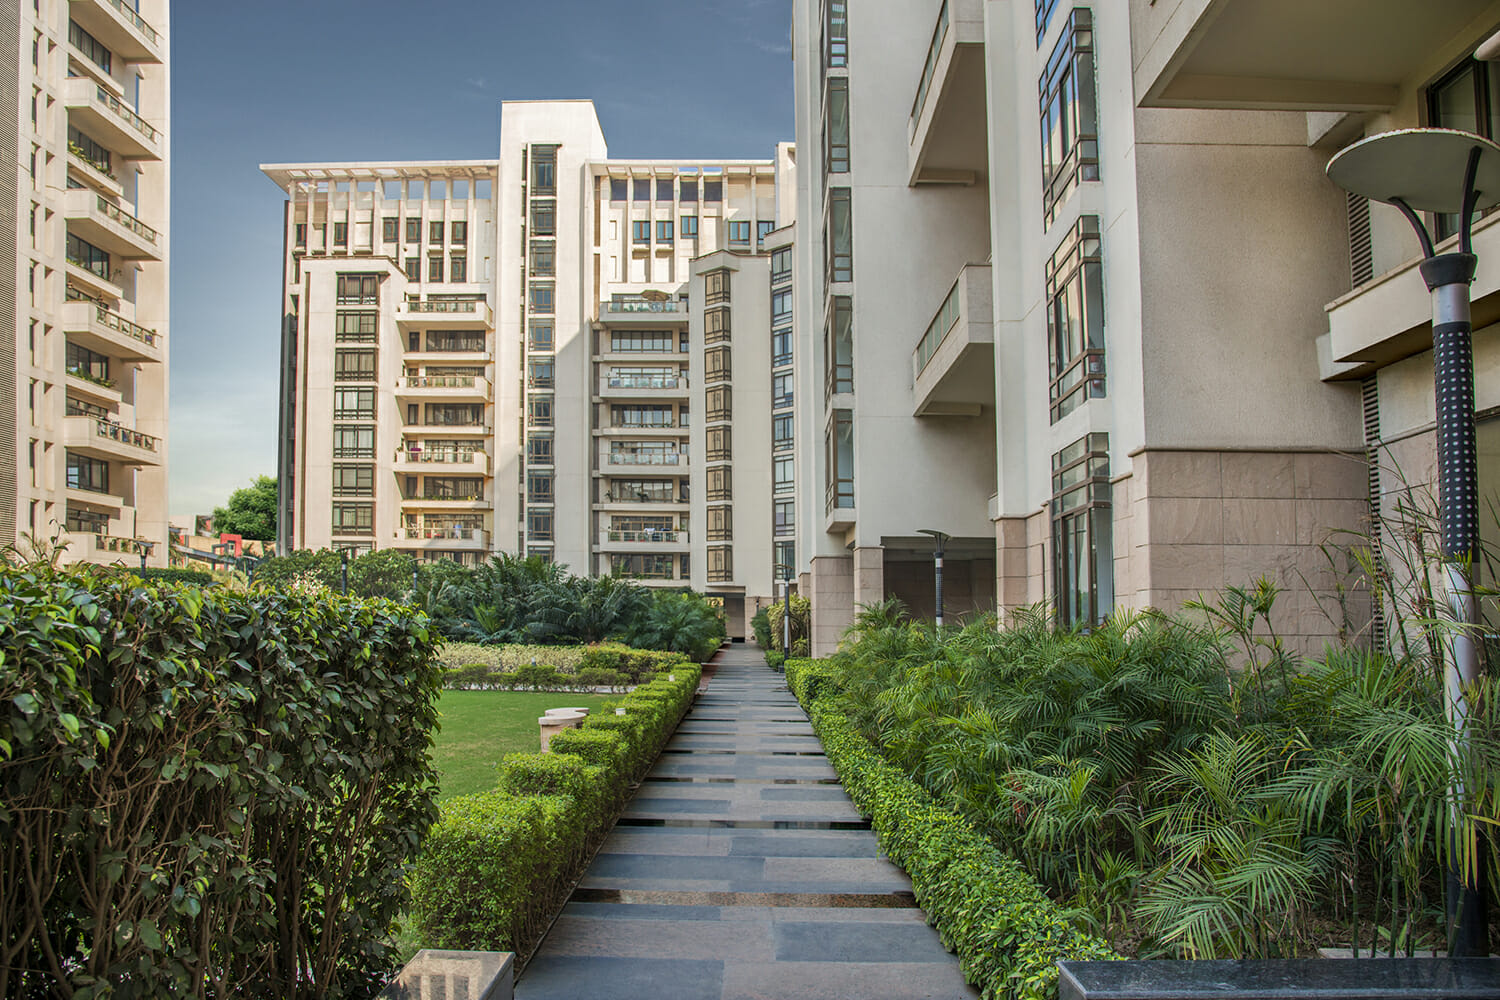 Penthouse In SS Hibiscus , Sector 50, Nirvana Country, Gurgaon